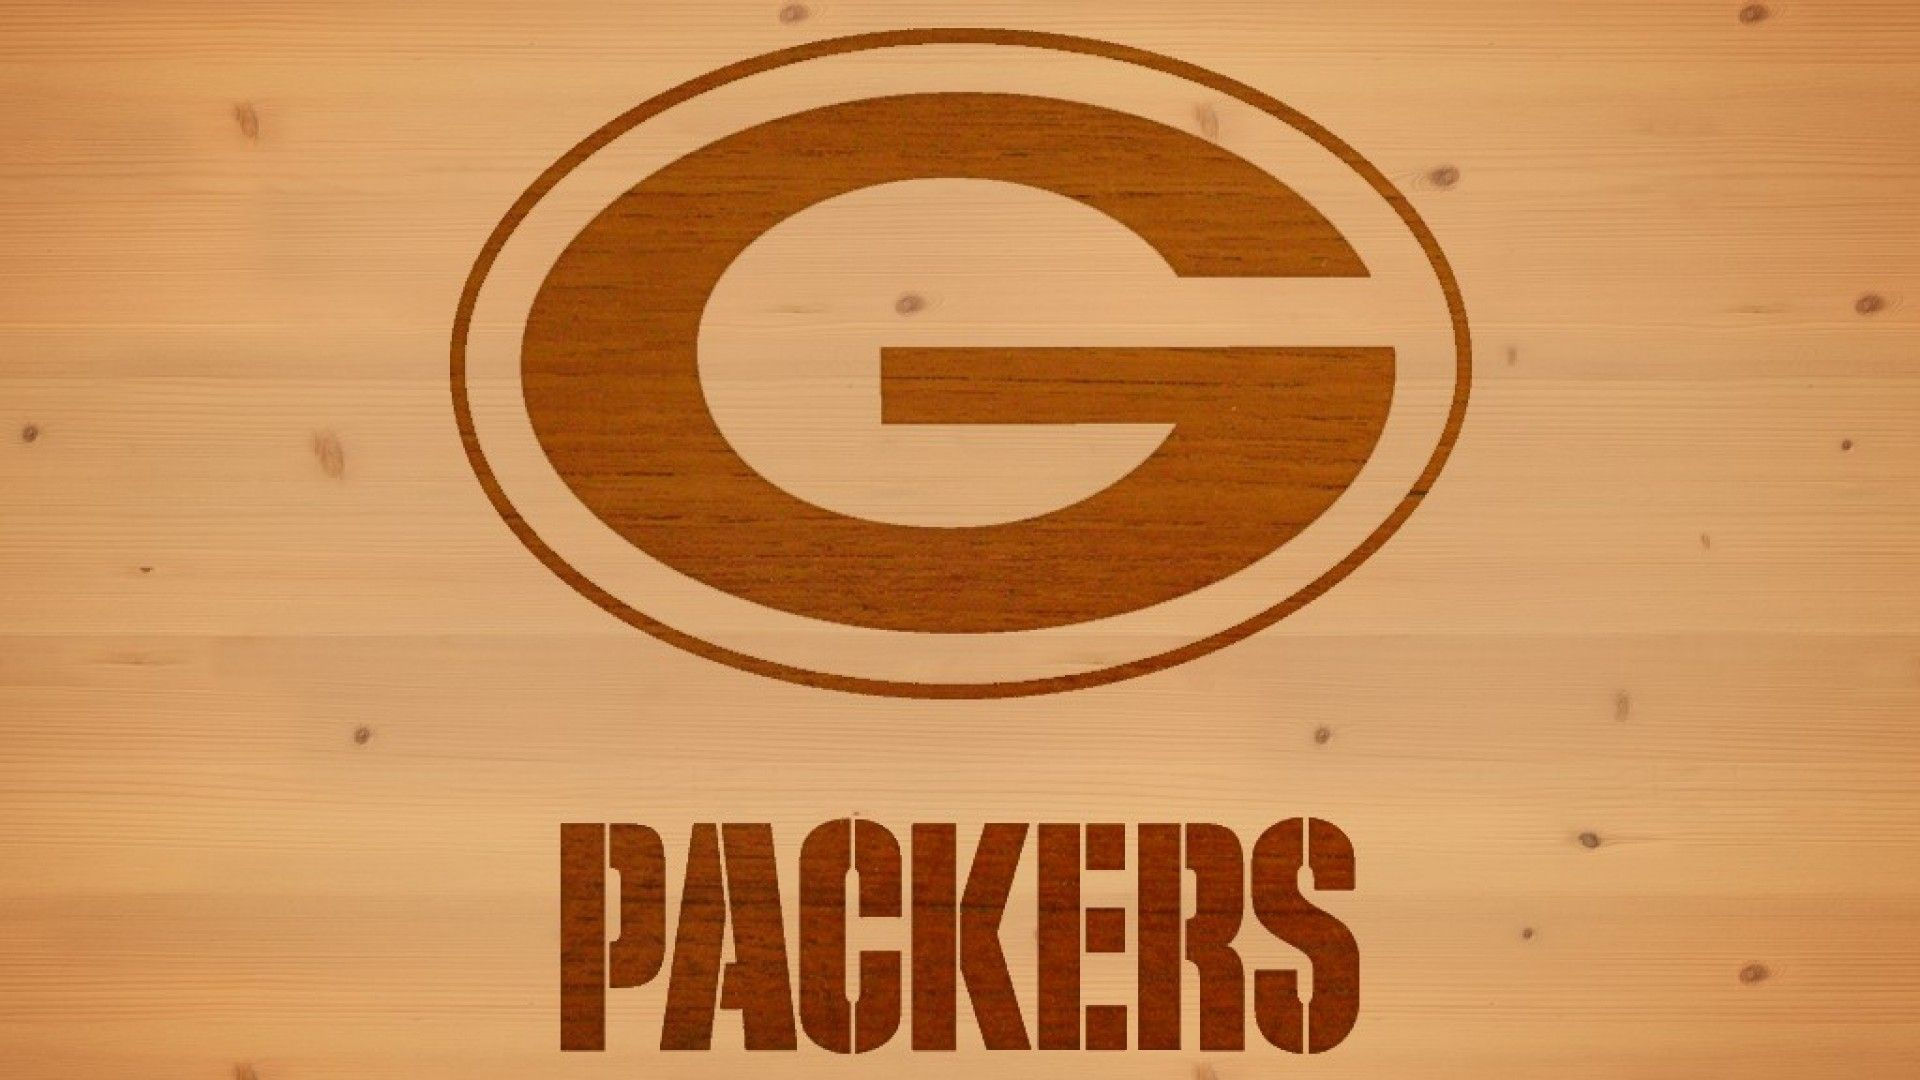 Green Bay Packers Hd Wallpapers Green Bay Packers Wallpaper Green Bay Packers Logo Packers